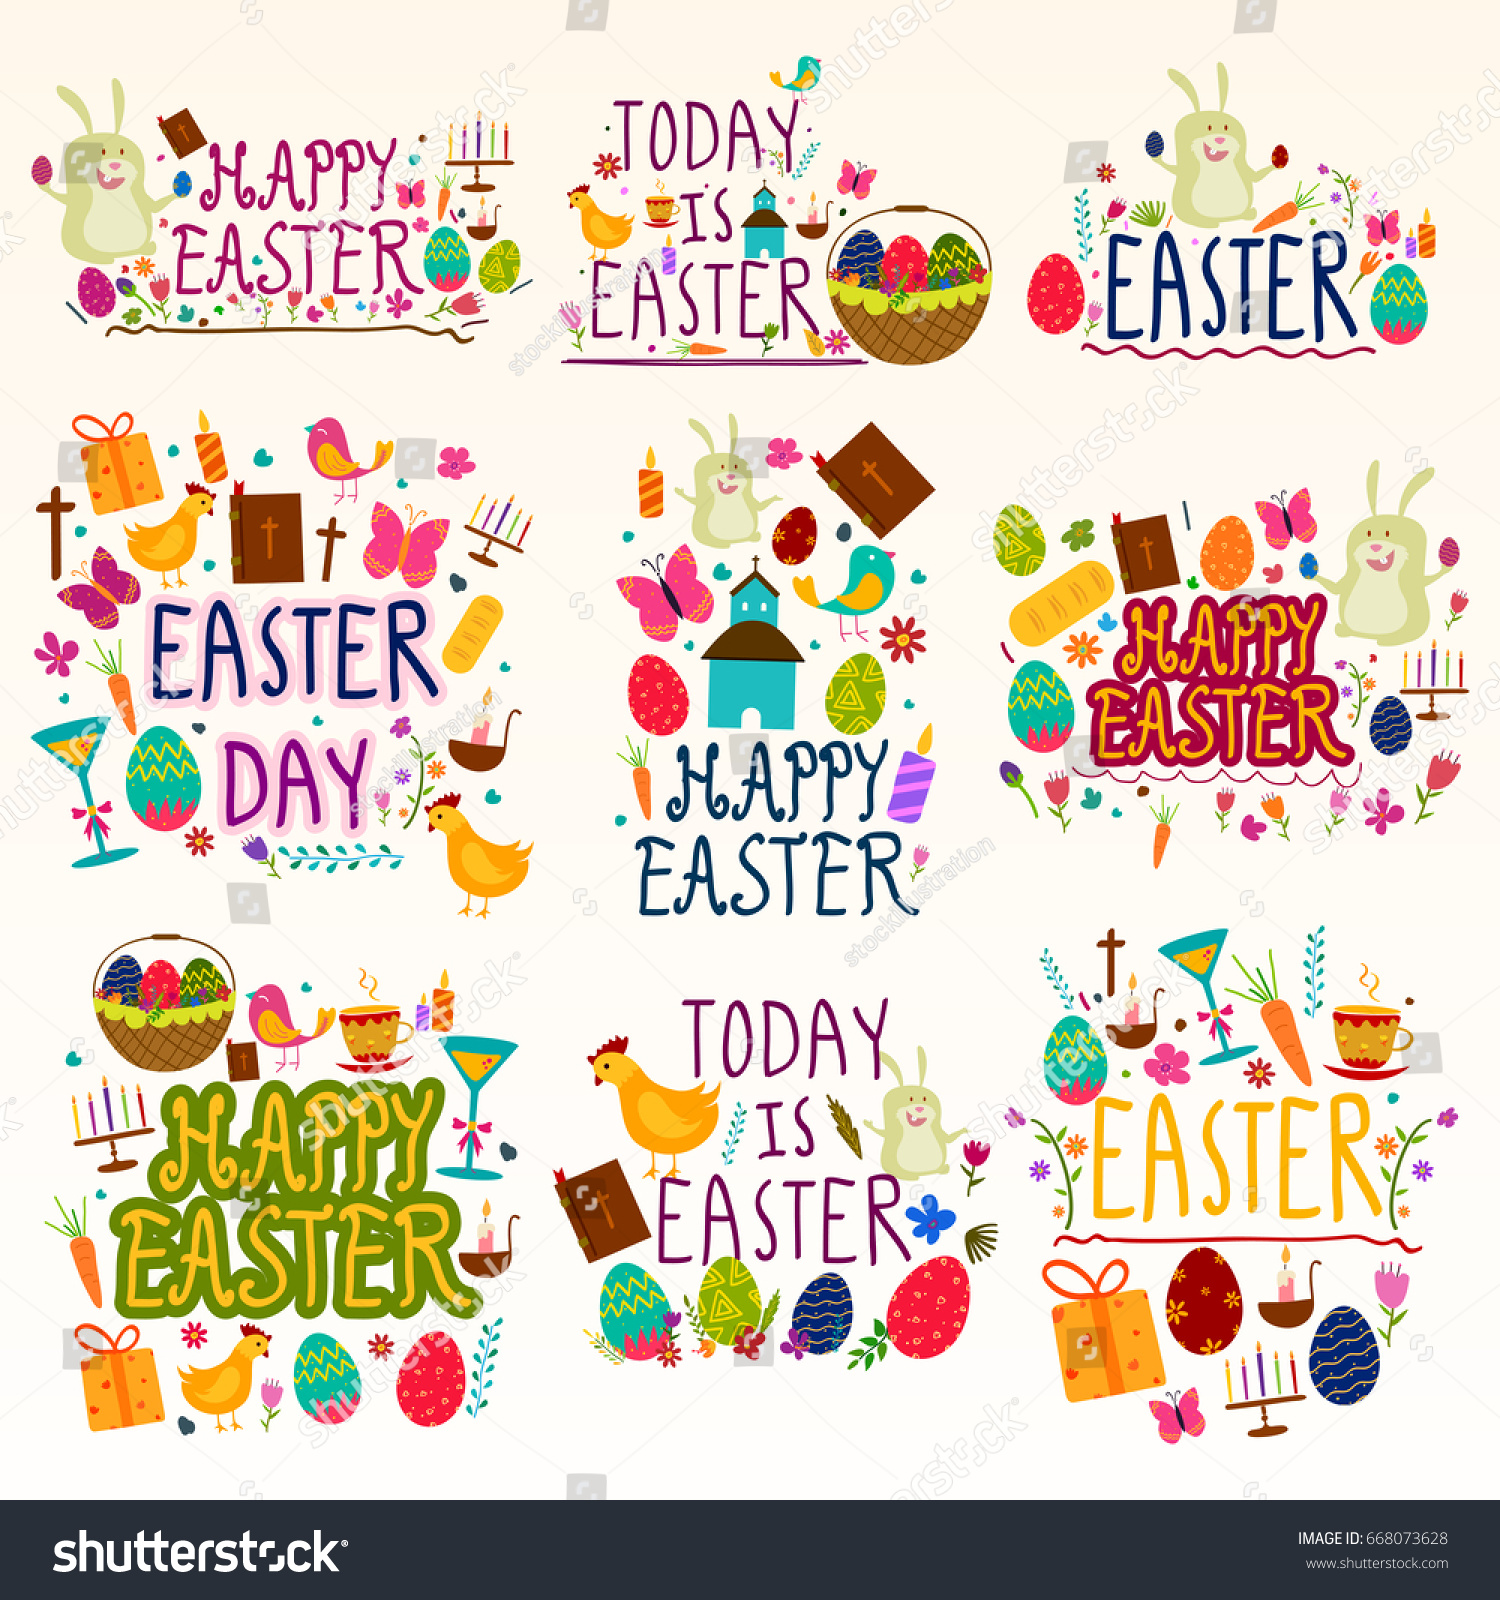 Happy Easter Holiday Festival Wishing Greetings Stock Vector